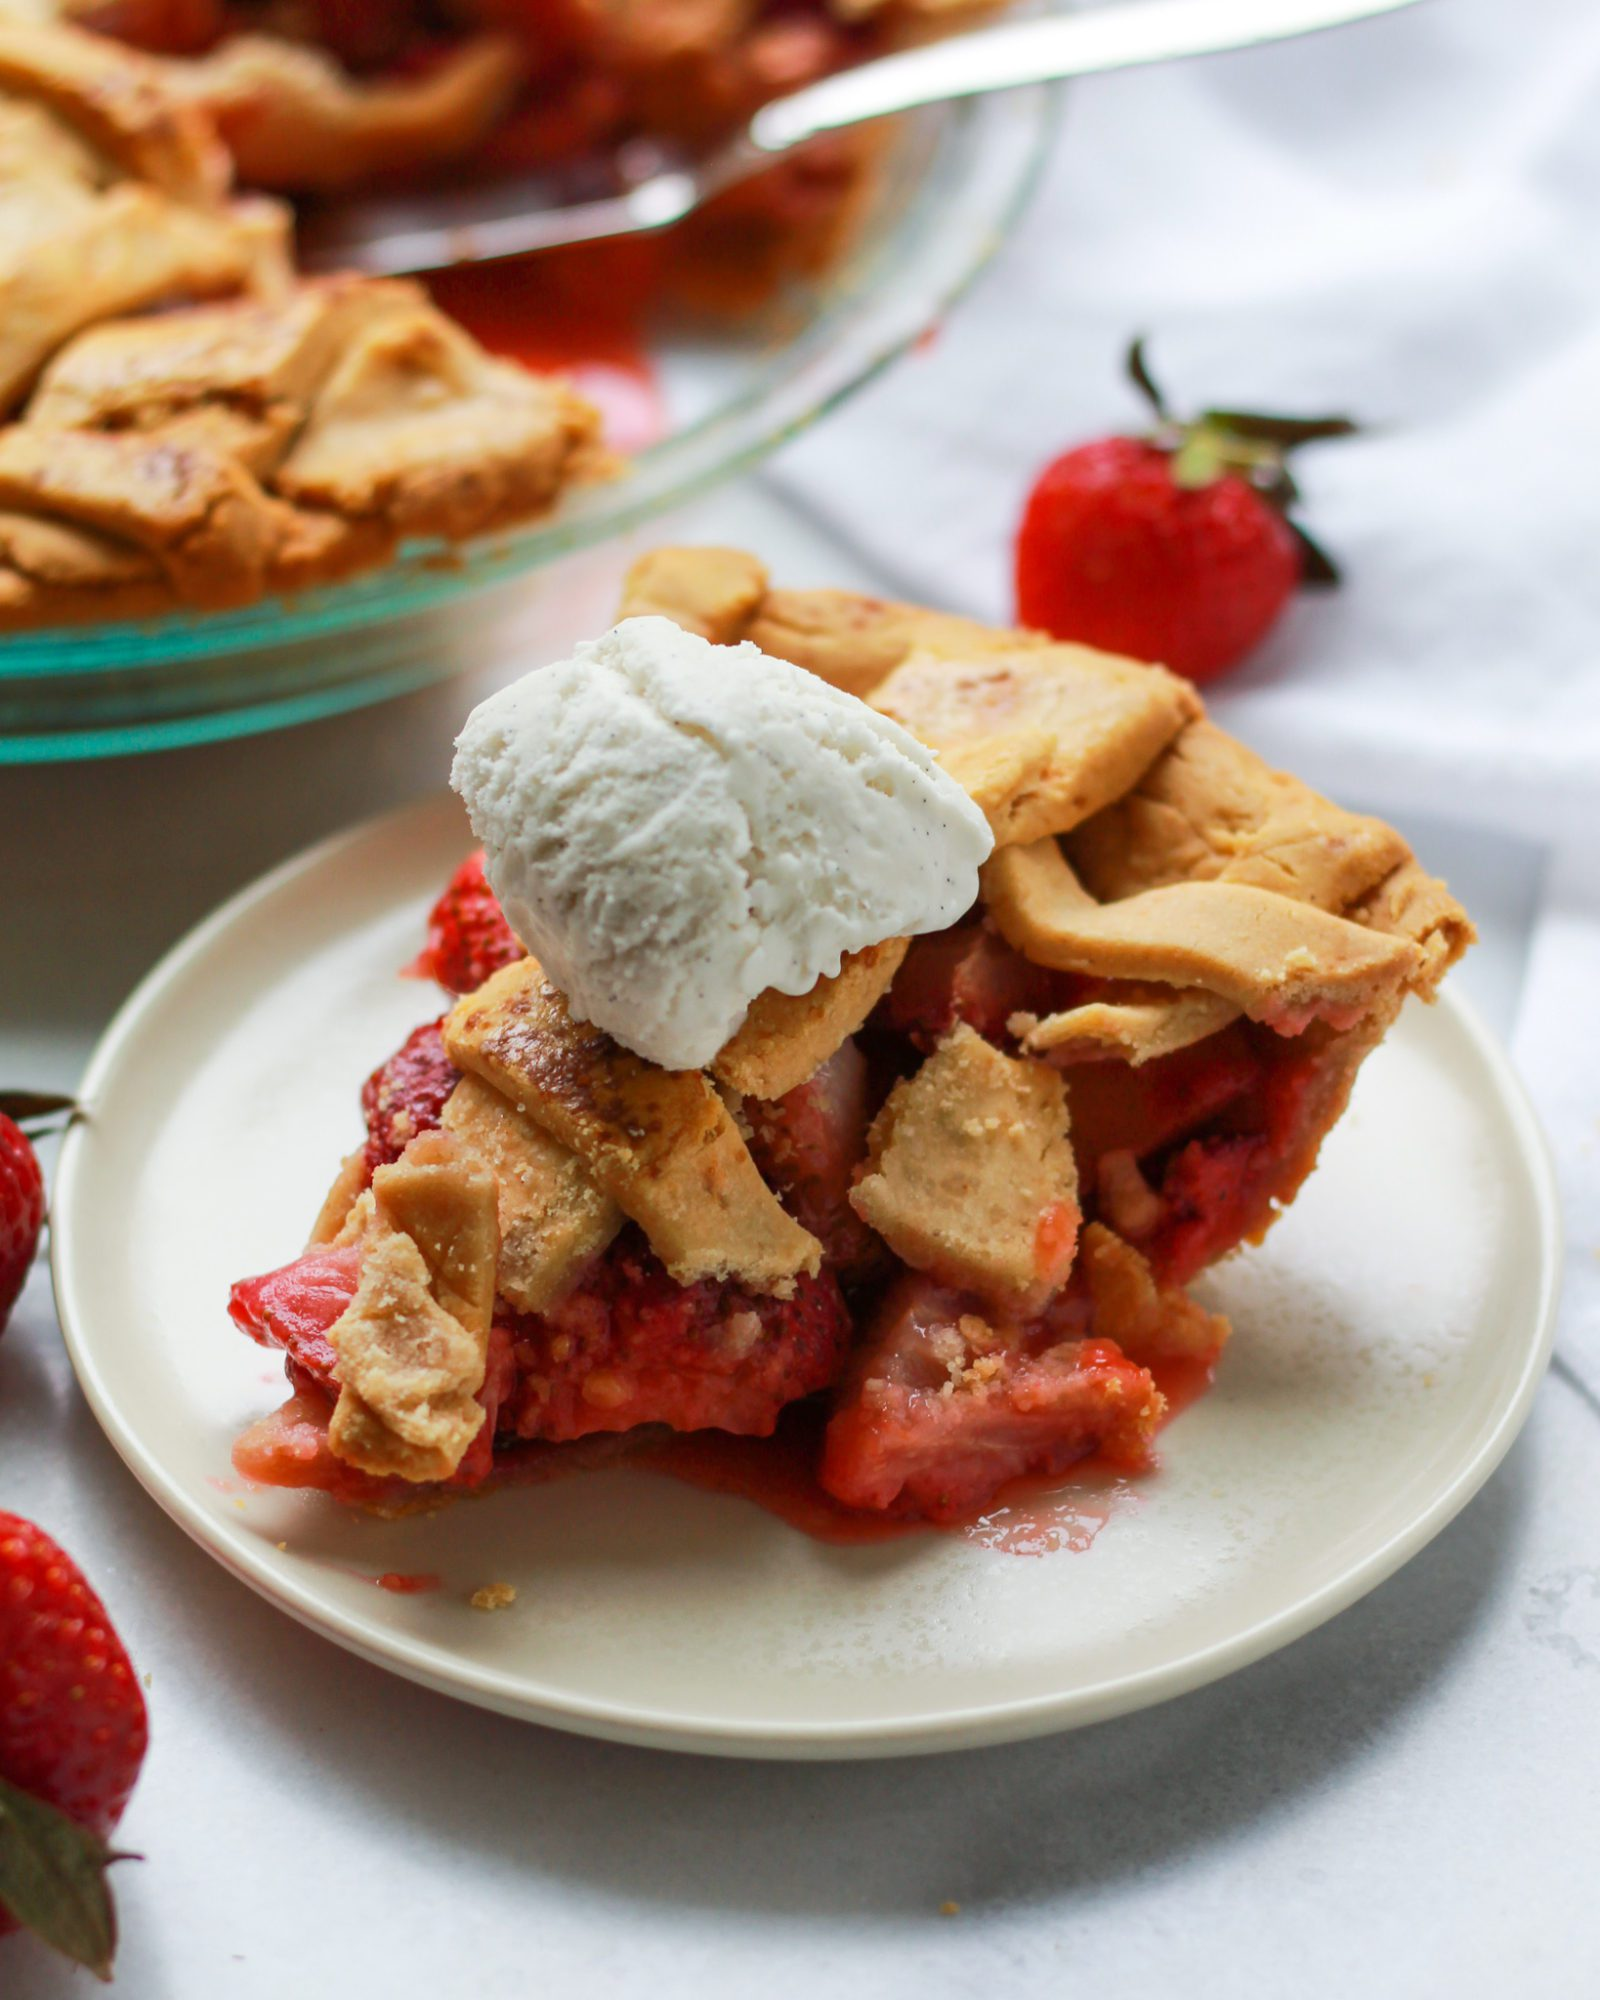 slice of rhubarb pie with a scoop of ice cream on top